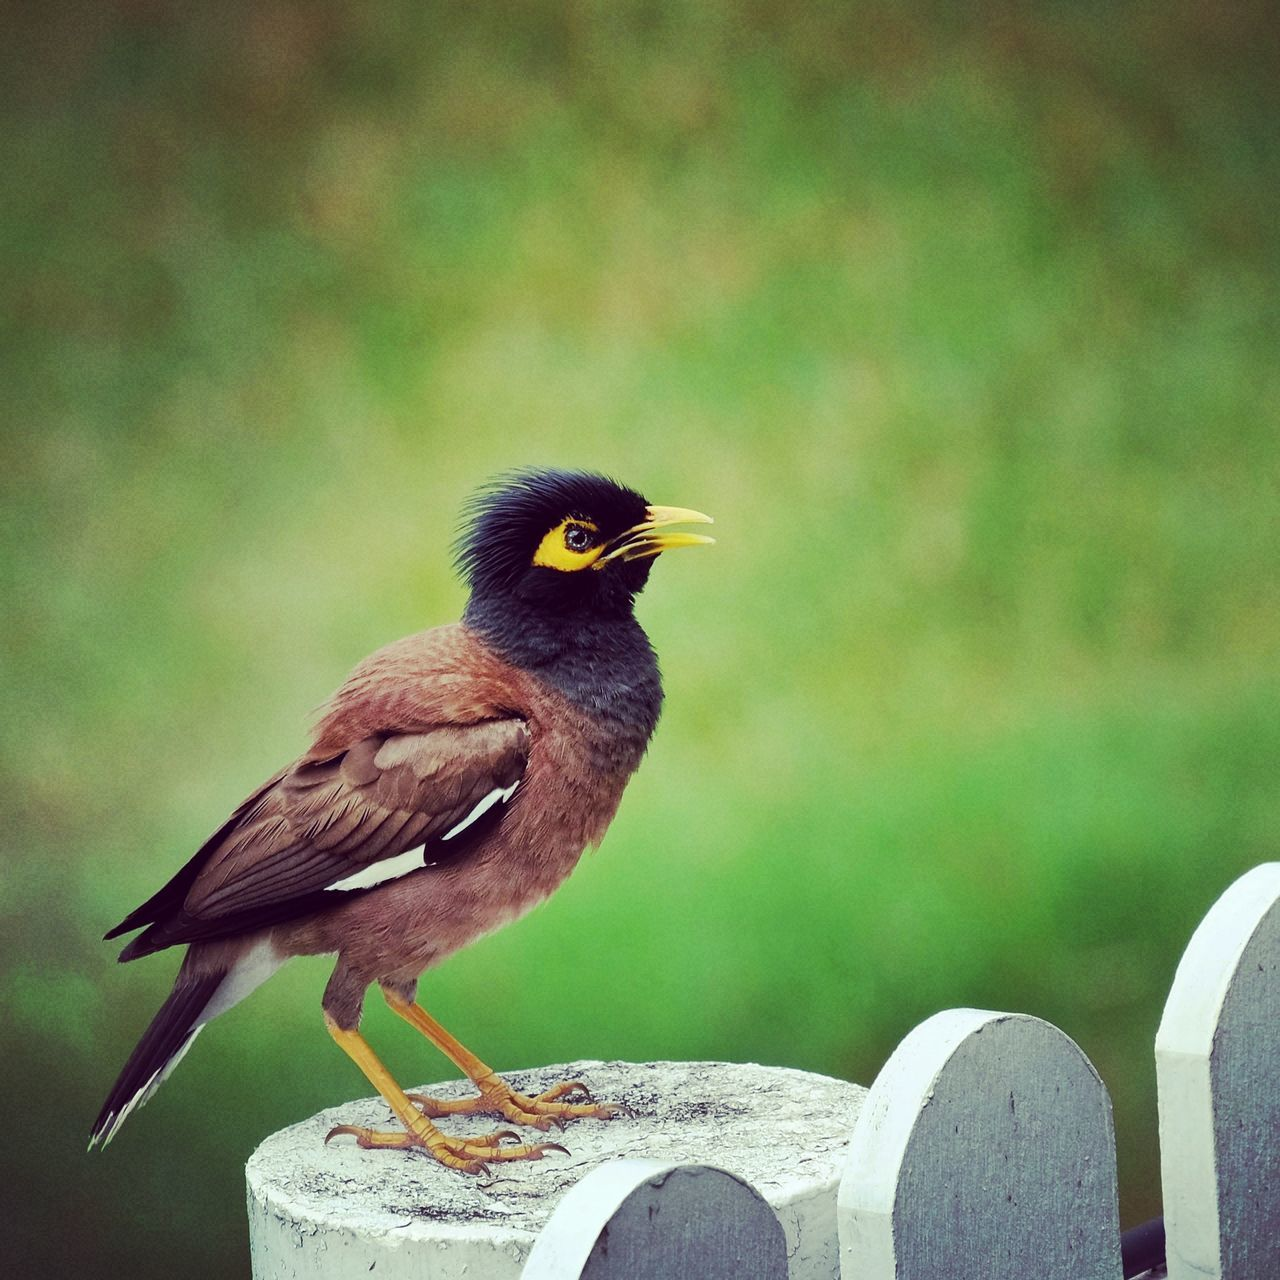 bird, animal themes, animals in the wild, perching, one animal, animal wildlife, no people, outdoors, day, nature, close-up